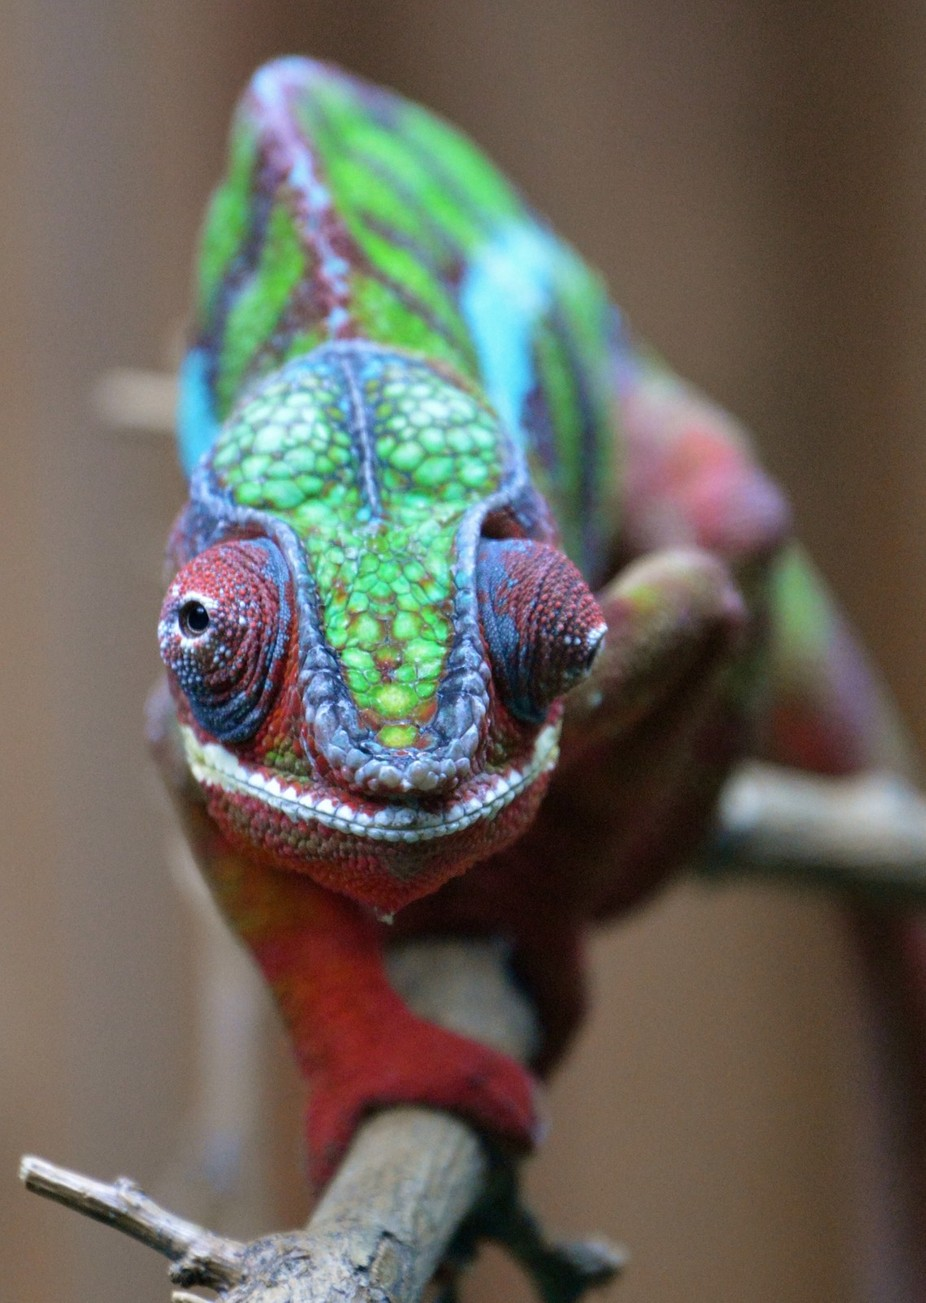 Are you looking at me by Jfer1992 - Reptiles Photo Contest